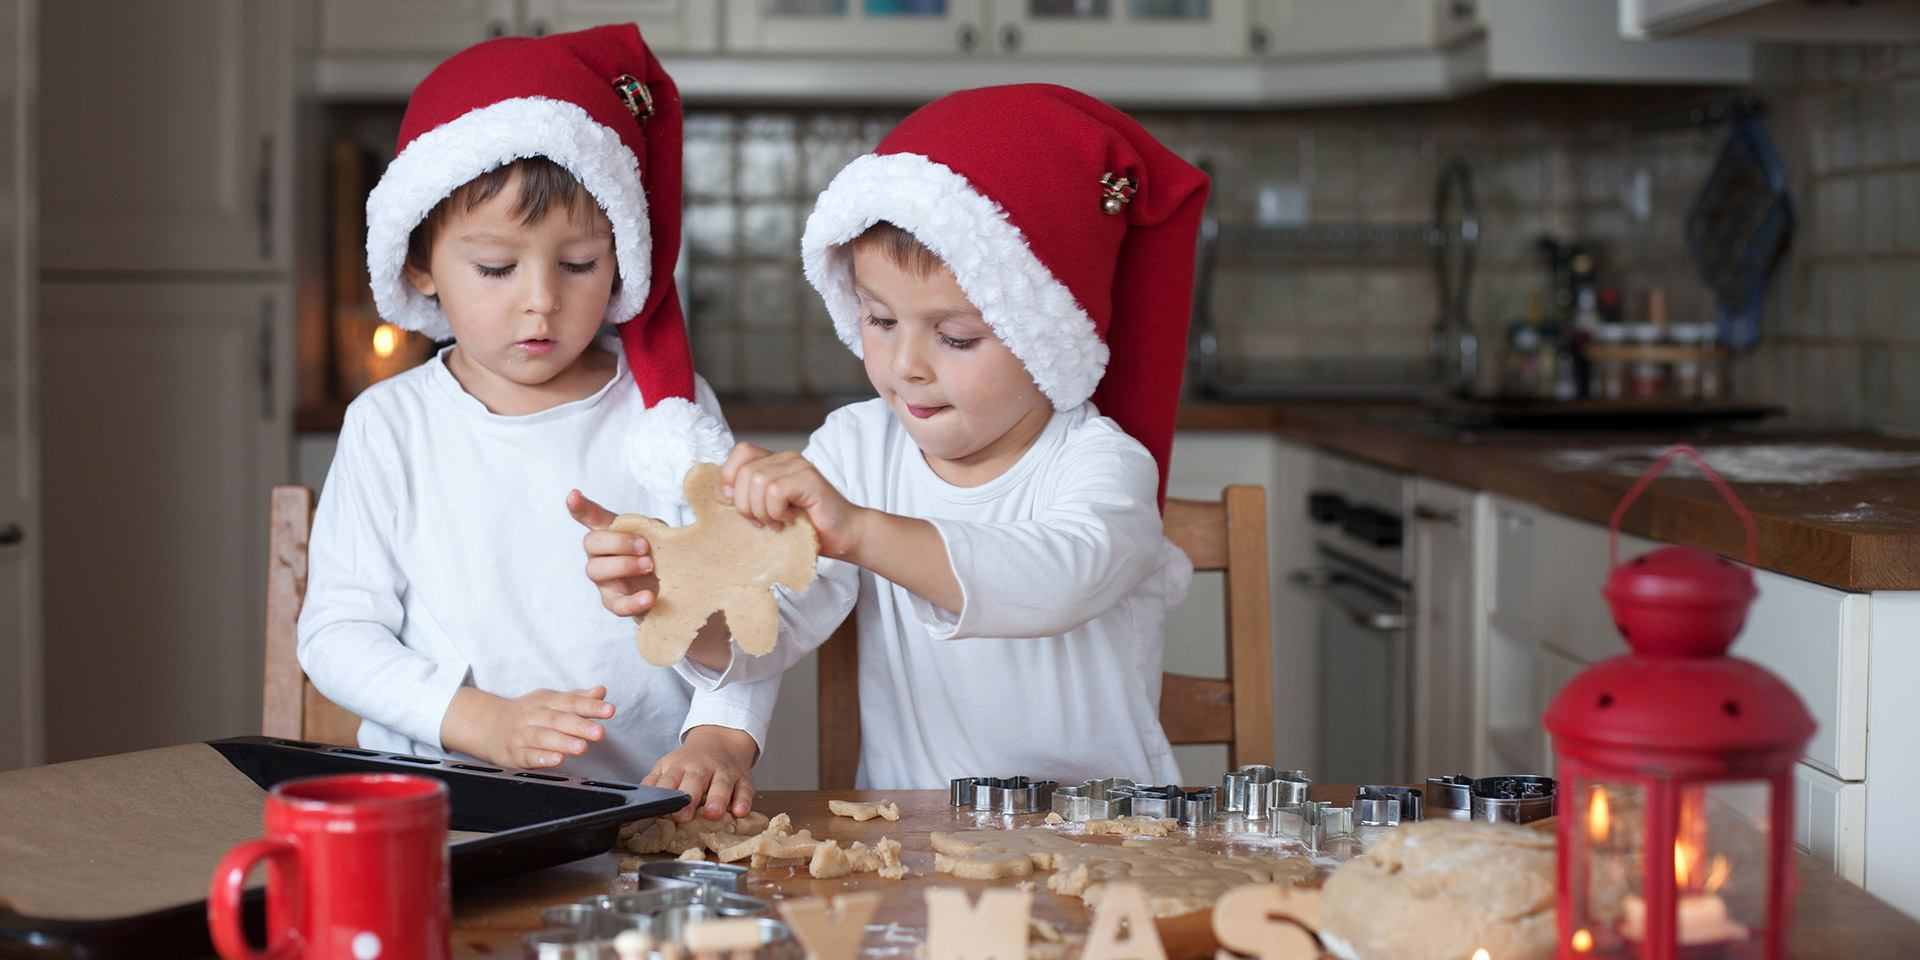 Children making Christmas food